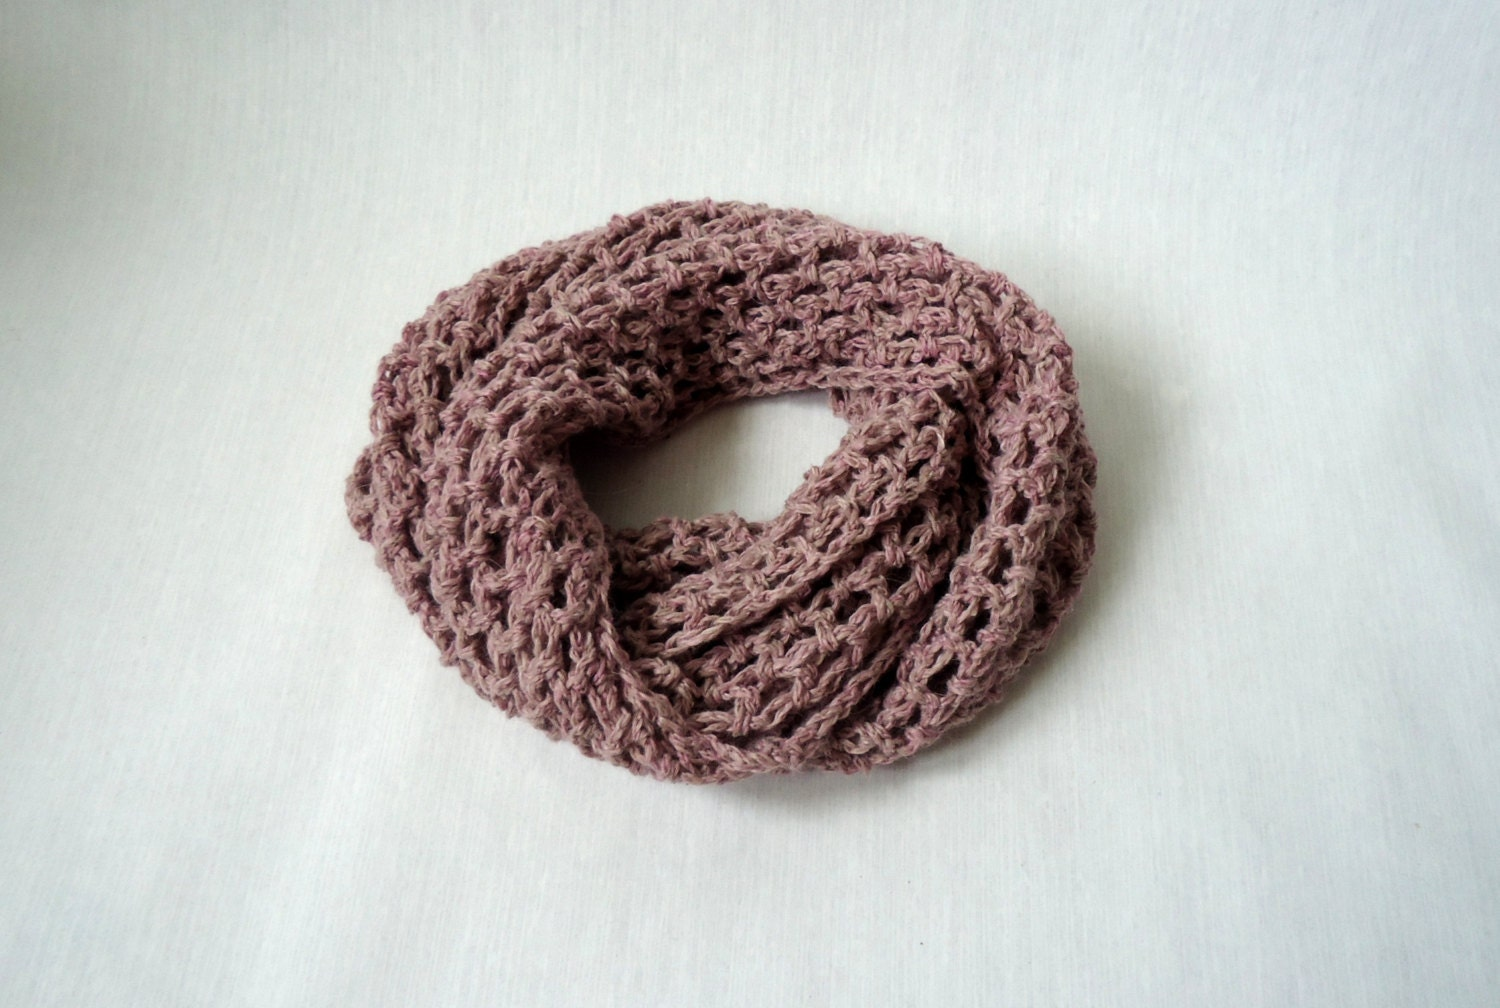 Crochet infinity scarf | chunky infinity scarf | fall festival scarf/ pink melange scarf - NotOnly